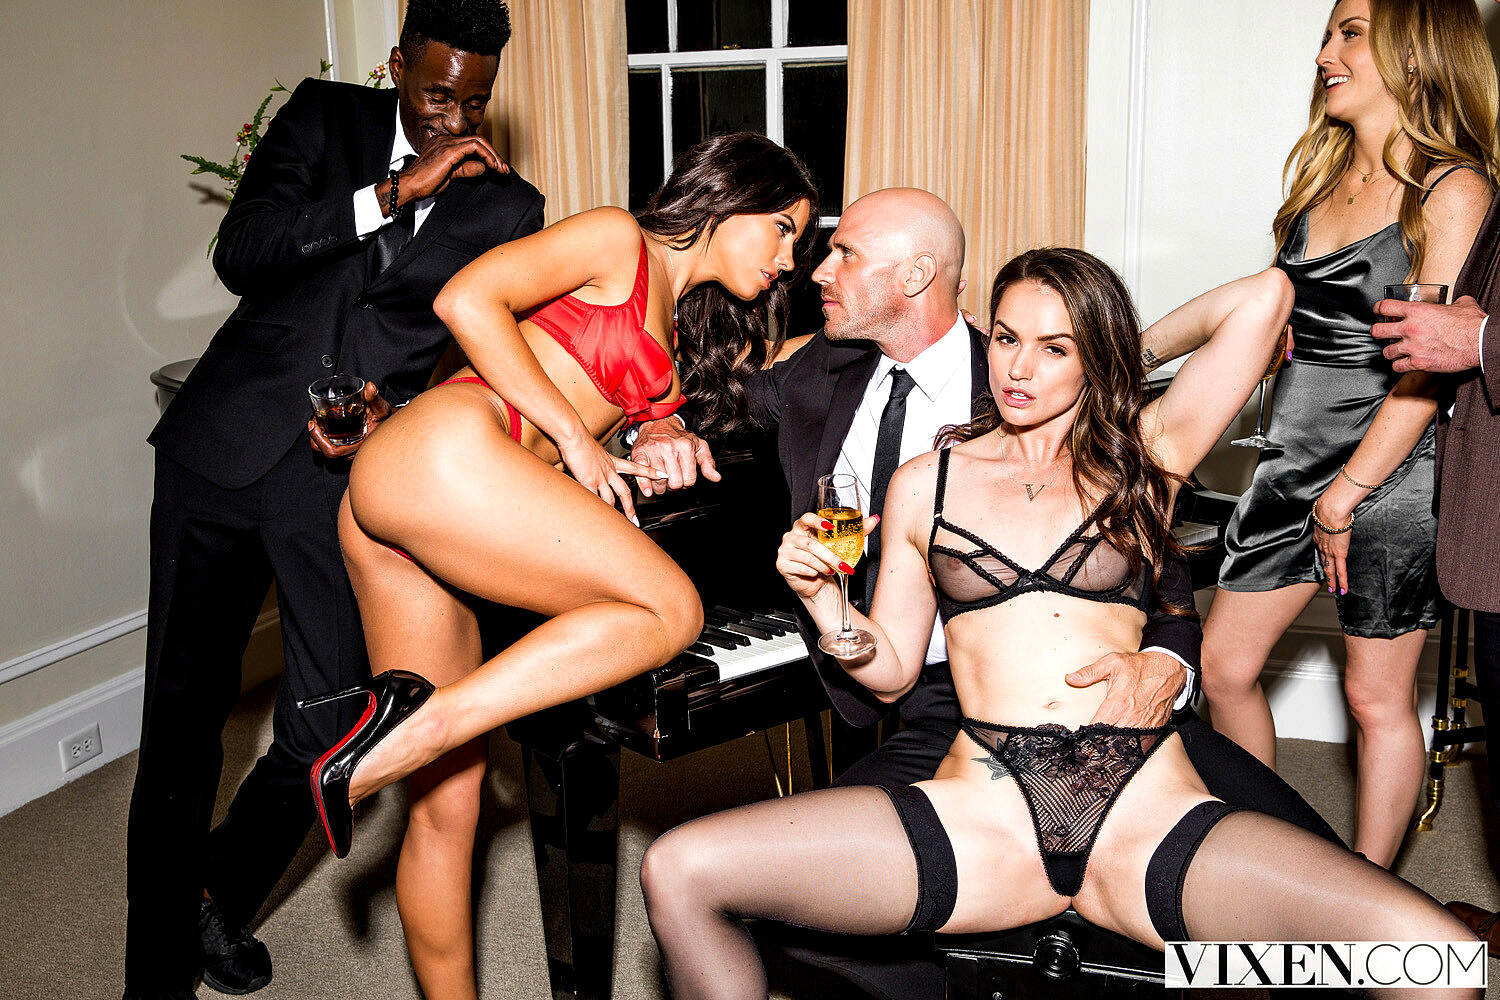 Tori black and adriana chechik take a private party to the next level